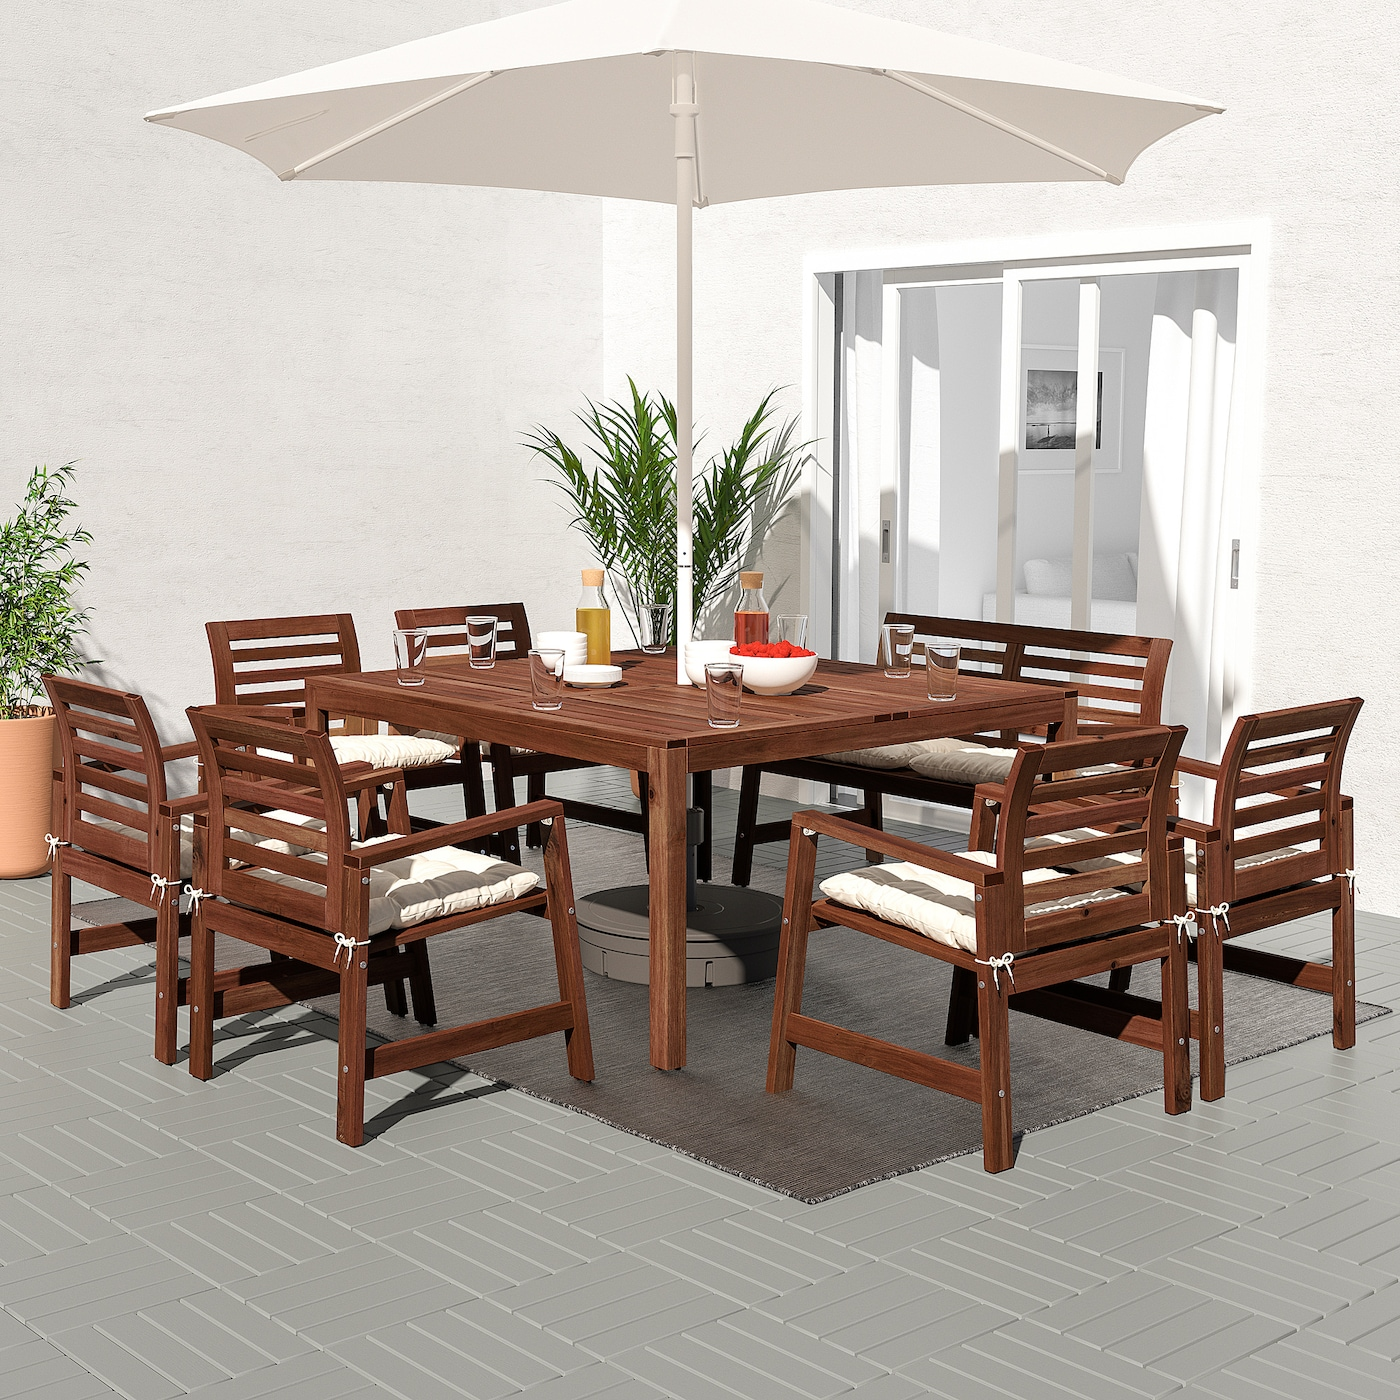 ÄPPLARÖ Table+9 chairs armr+bench, outdoor - brown stained/Kuddarna beige